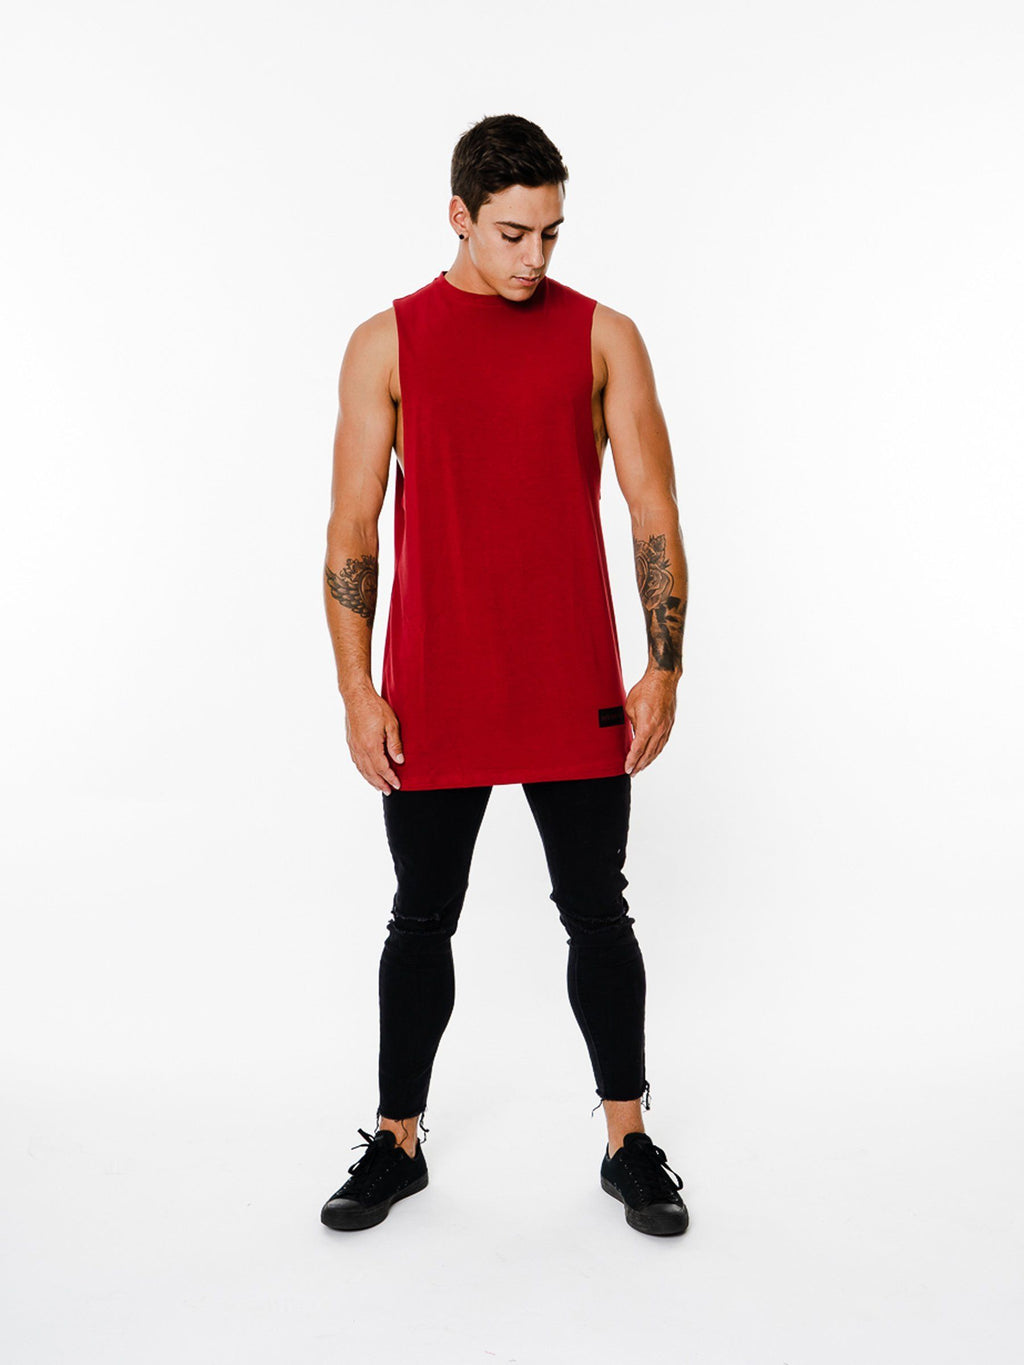 BASIX COLLECTION CUT OFF TEE (DEEP RED) MANASSE COLLECTION Imperial Clothing